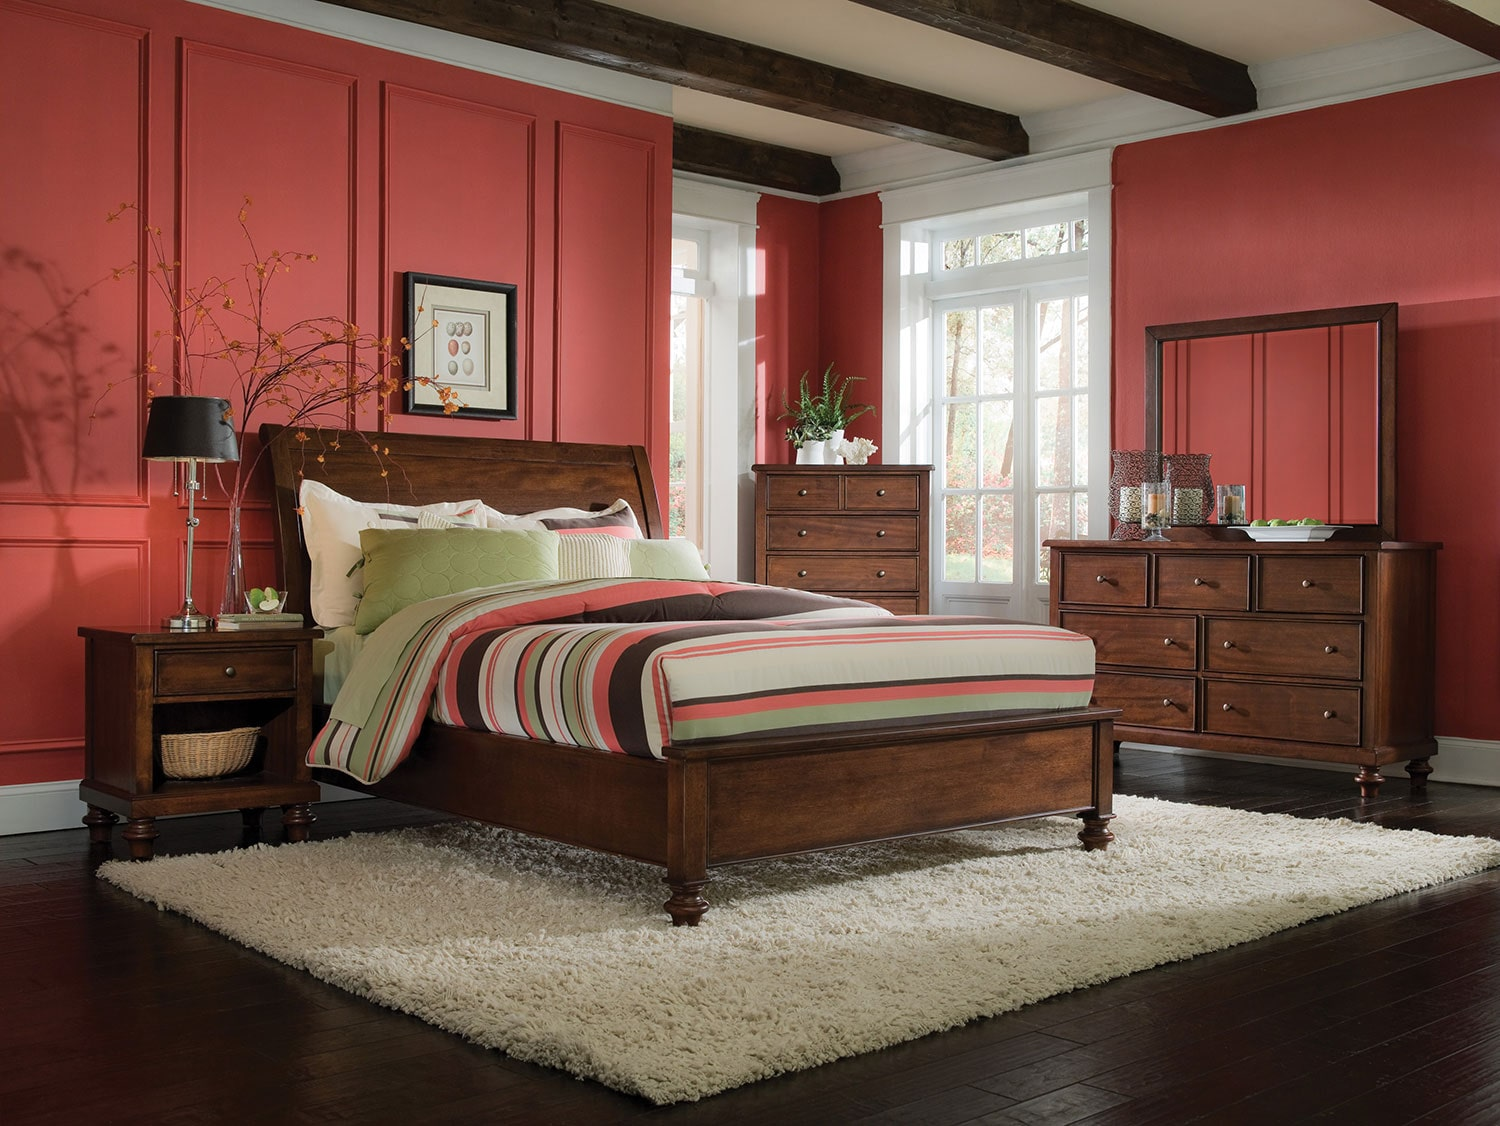 Camden 4-Piece Queen Bedroom Set - Chestnut | Levin Furniture